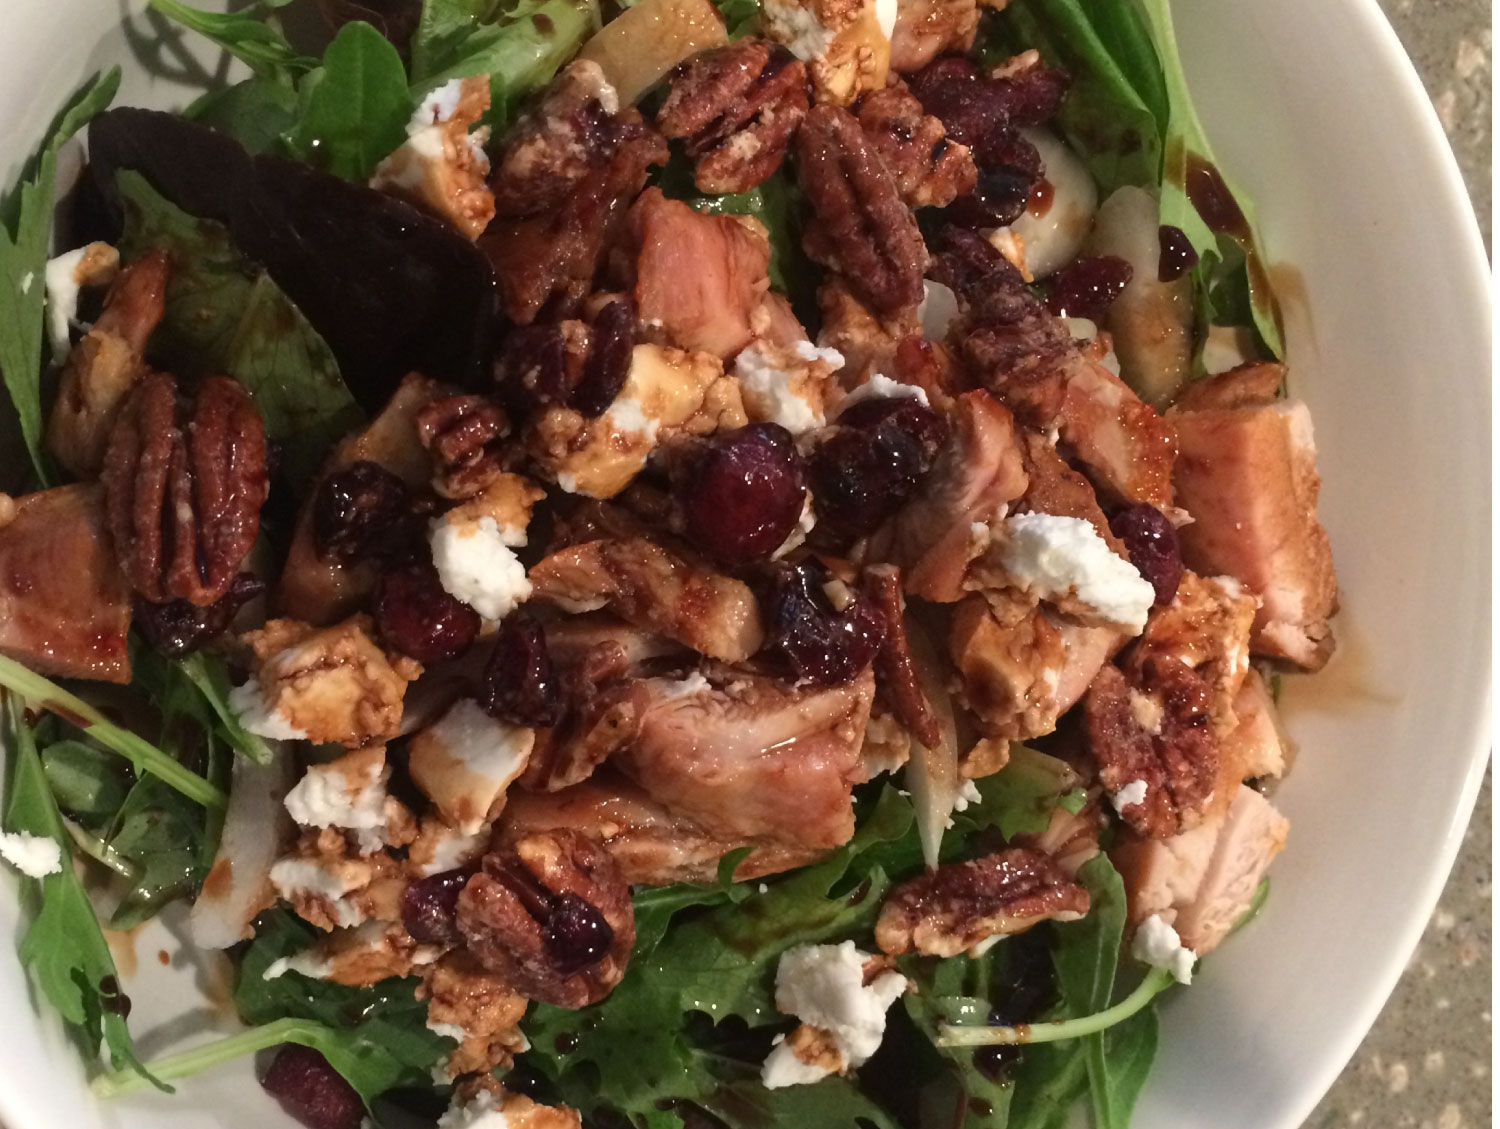 Chicken Salad with Goat Cheese, Pecans, Dried Cranberries, Balsamic Vinegar & Olive Oil